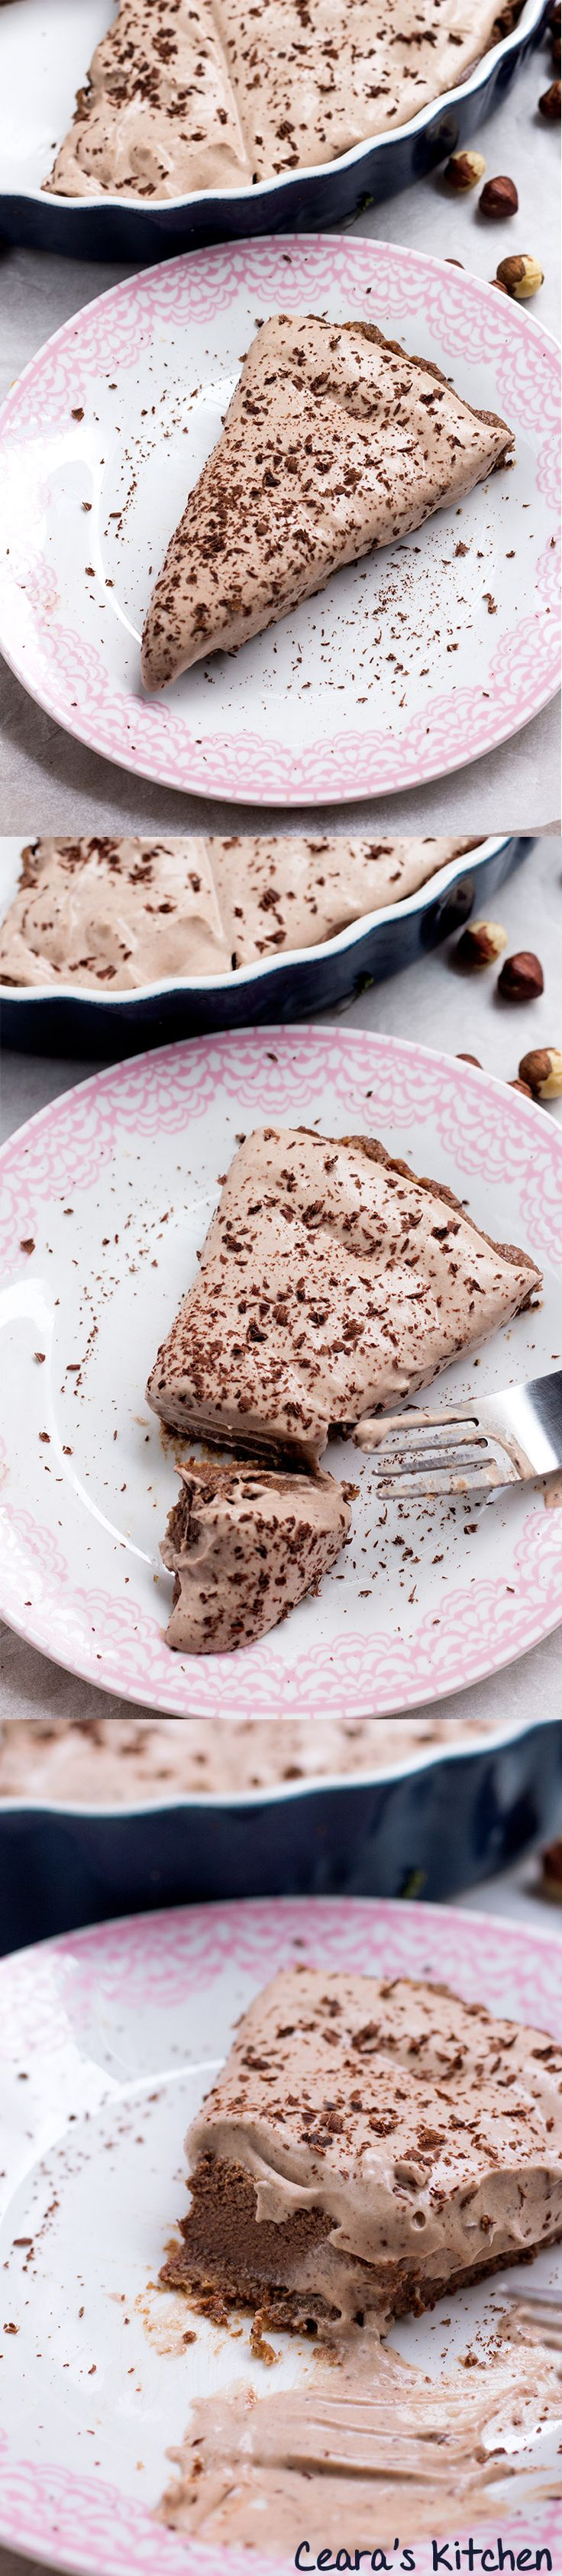 Vegan Chocolate Hazelnut Pie - Healthy No Bake Nutella Pie! A chocolate cookie crust, chocolate-hazelnut center & chocolate mousse top!